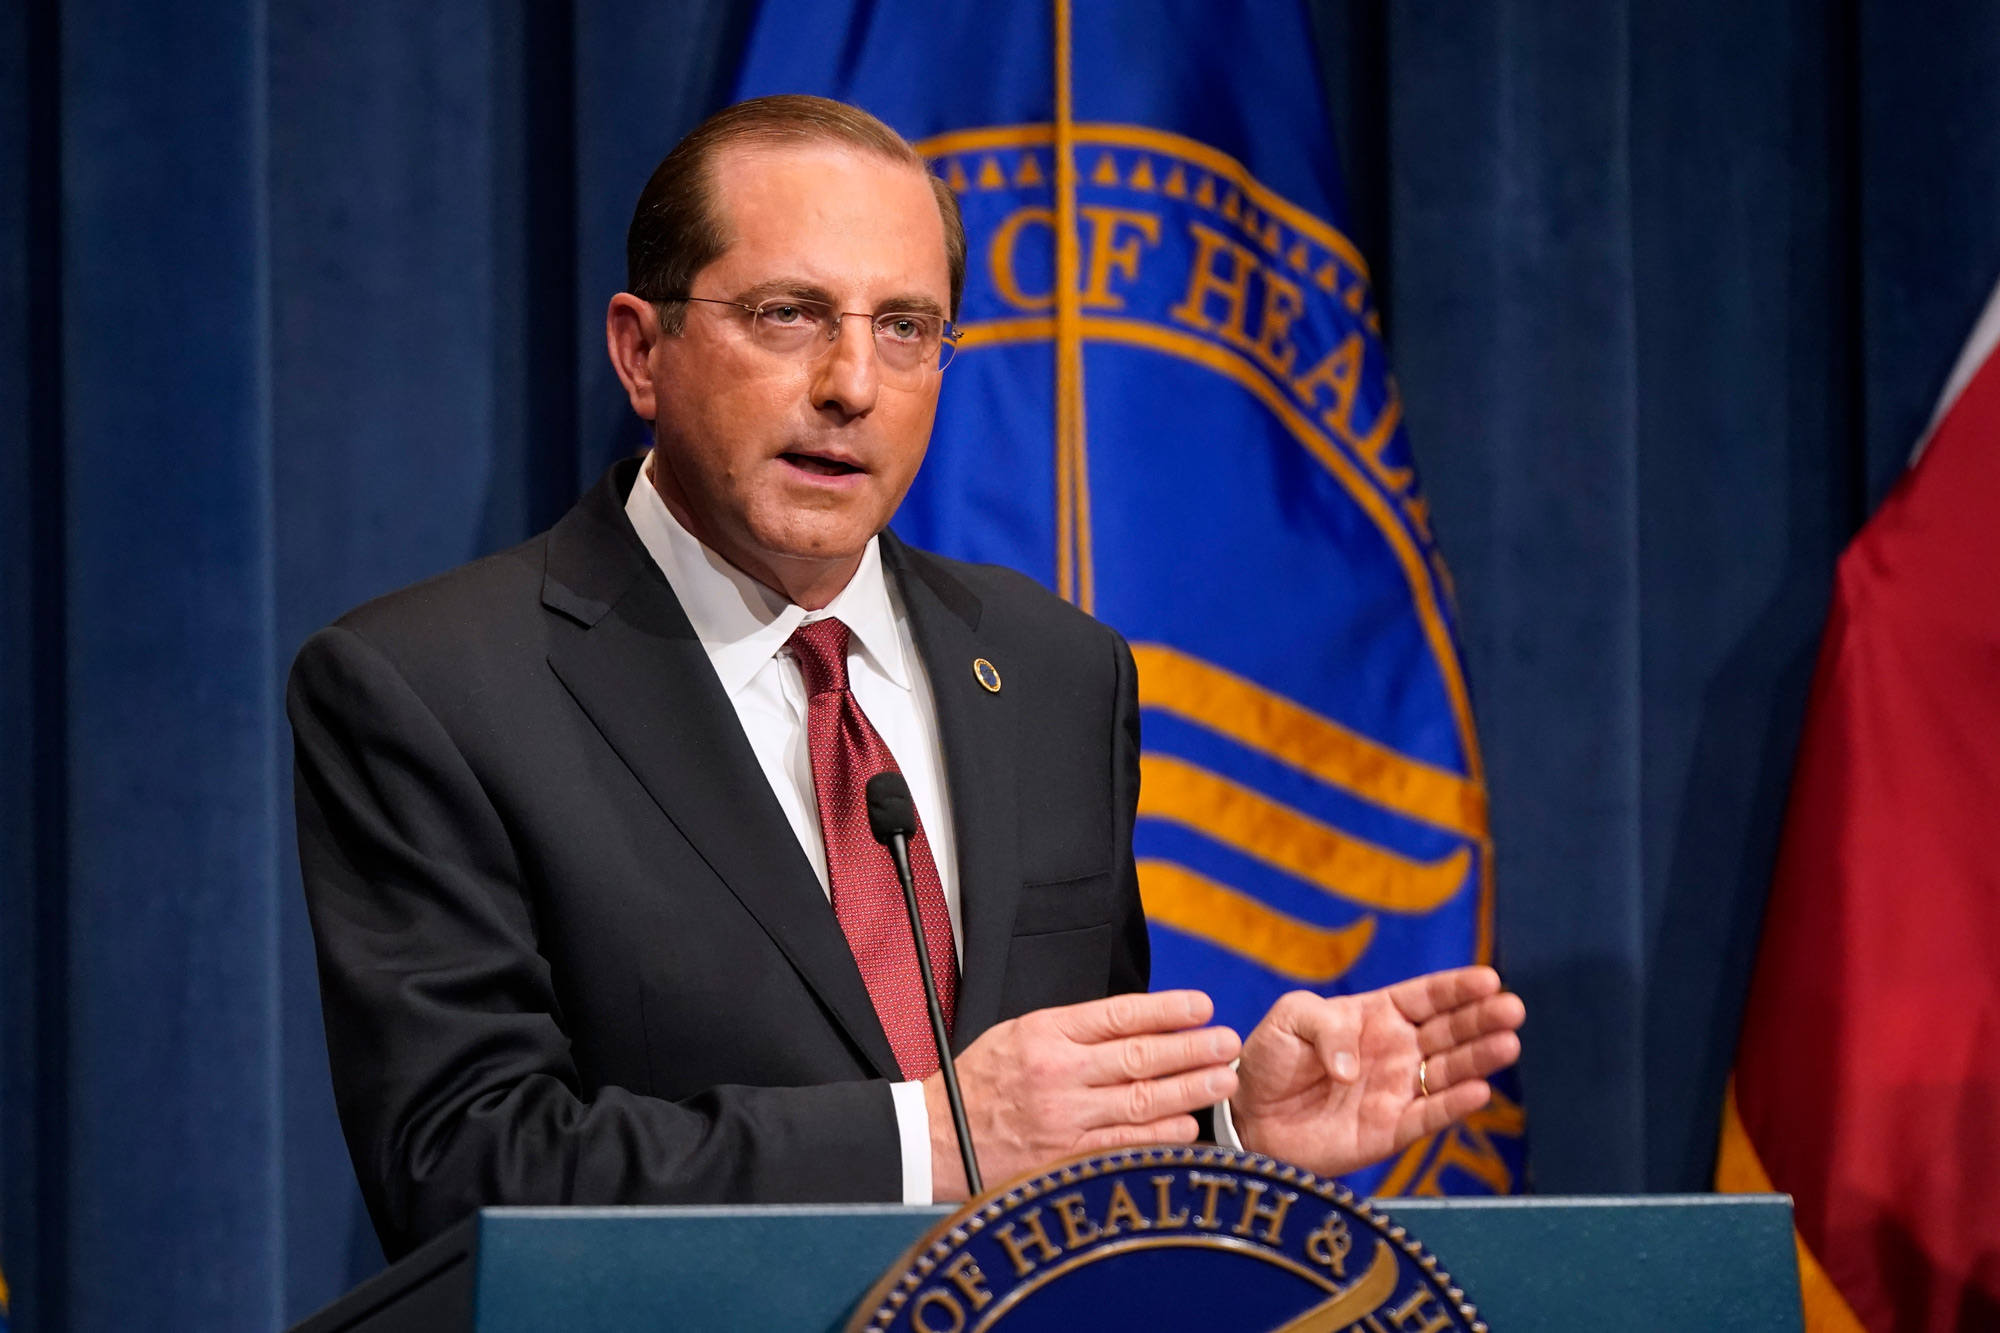 Health and Human Services Secretary Alex Azar speaks during a news conference on Operation Warp Speed and COVID-19 vaccine distribution on January 12 in Washington, DC.